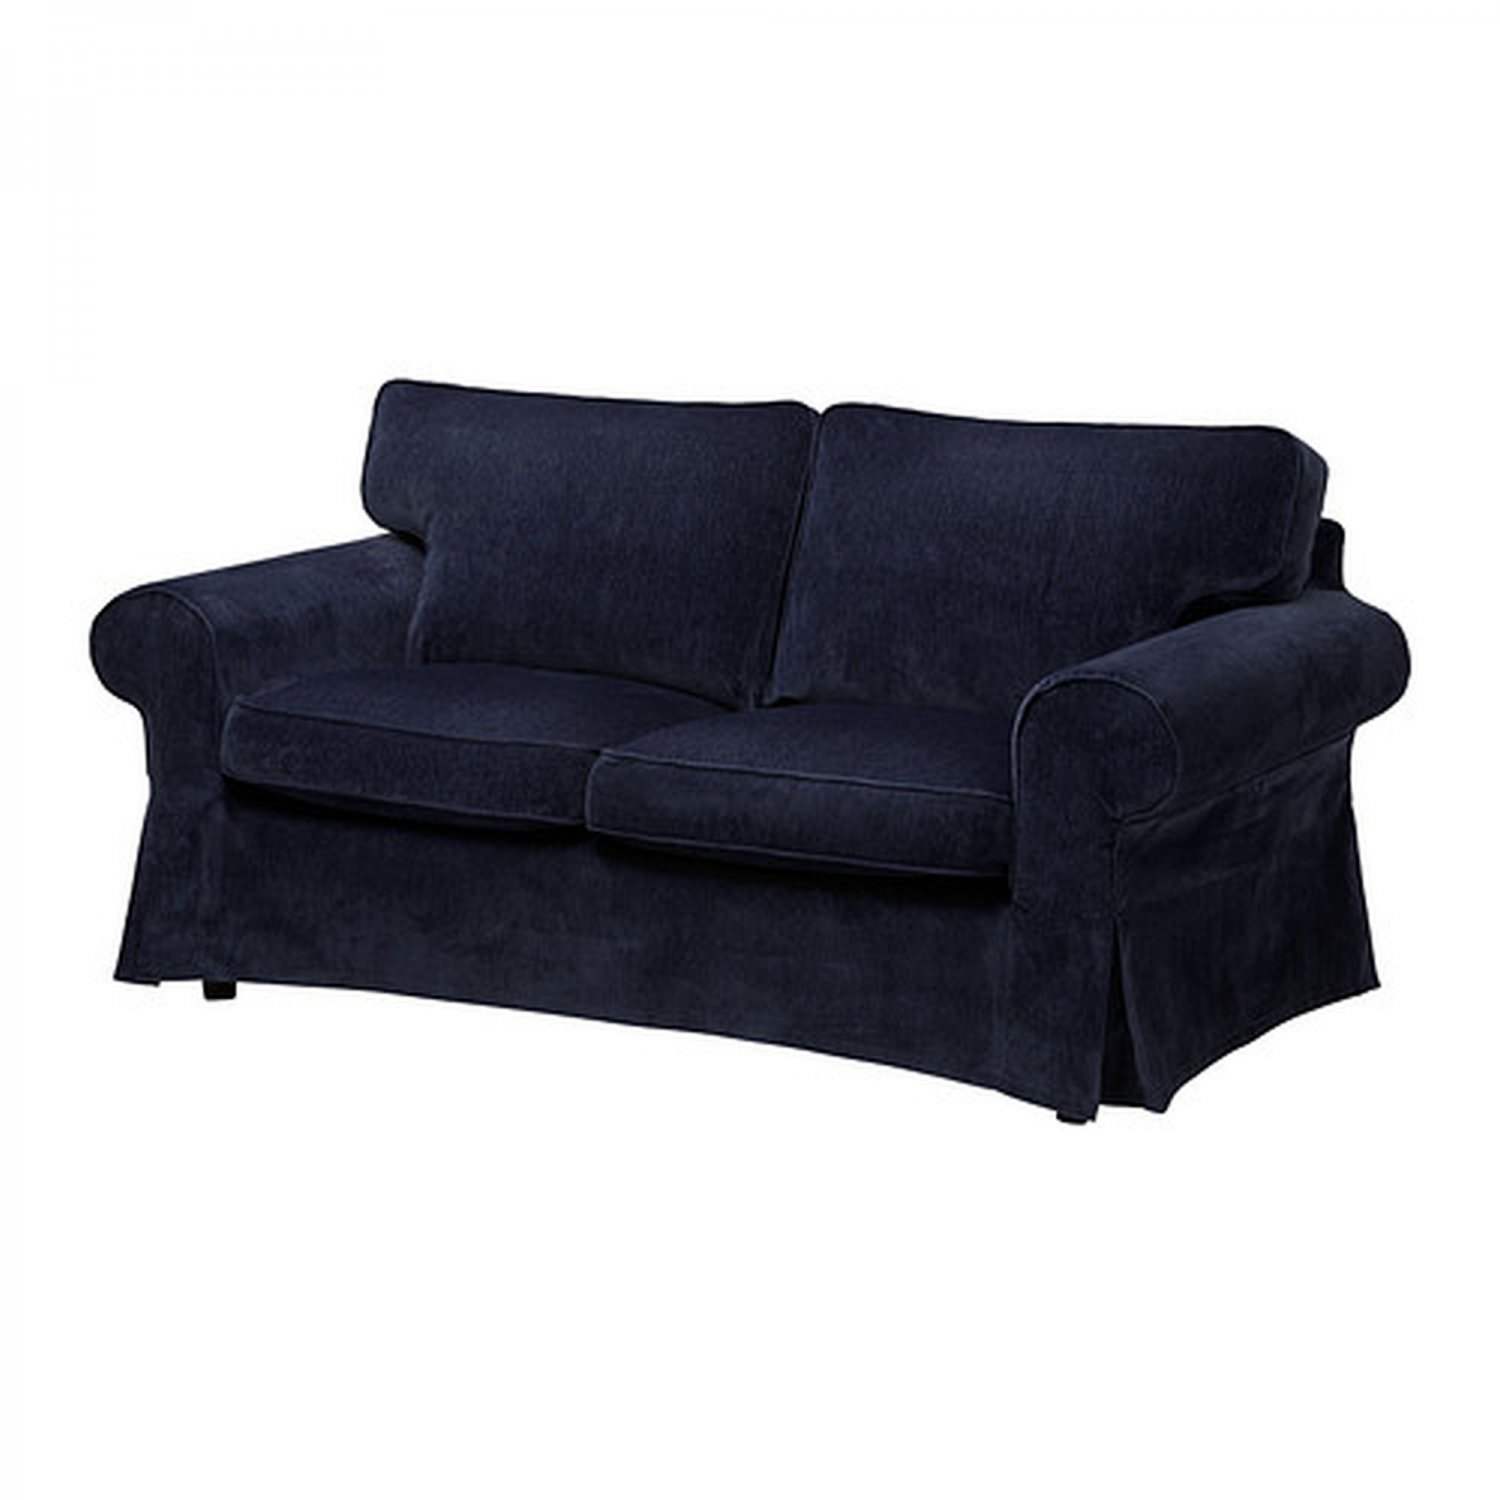 Ikea ektorp 2 seat sofa slipcover loveseat cover vellinge dark blue Cover for loveseat